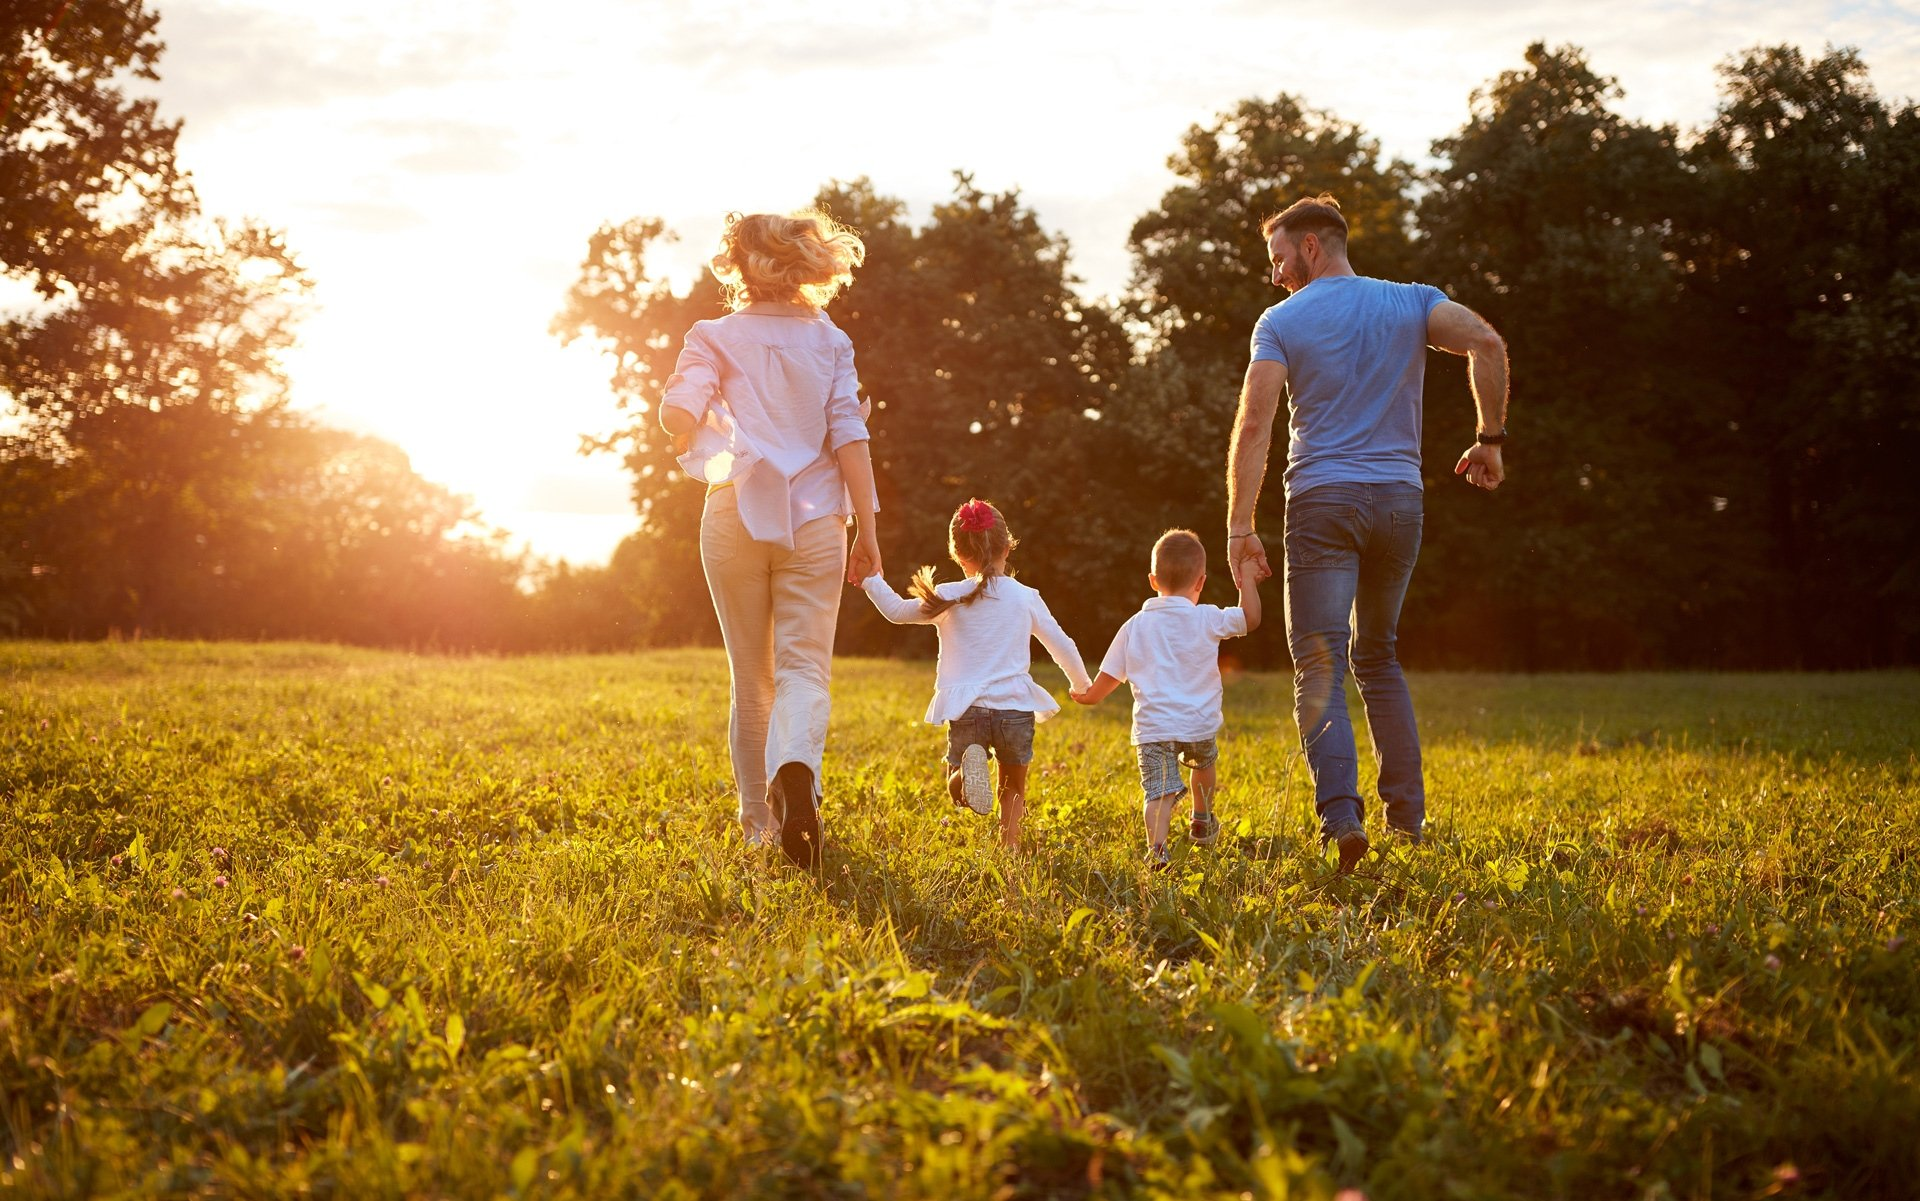 Benefits of running as a family